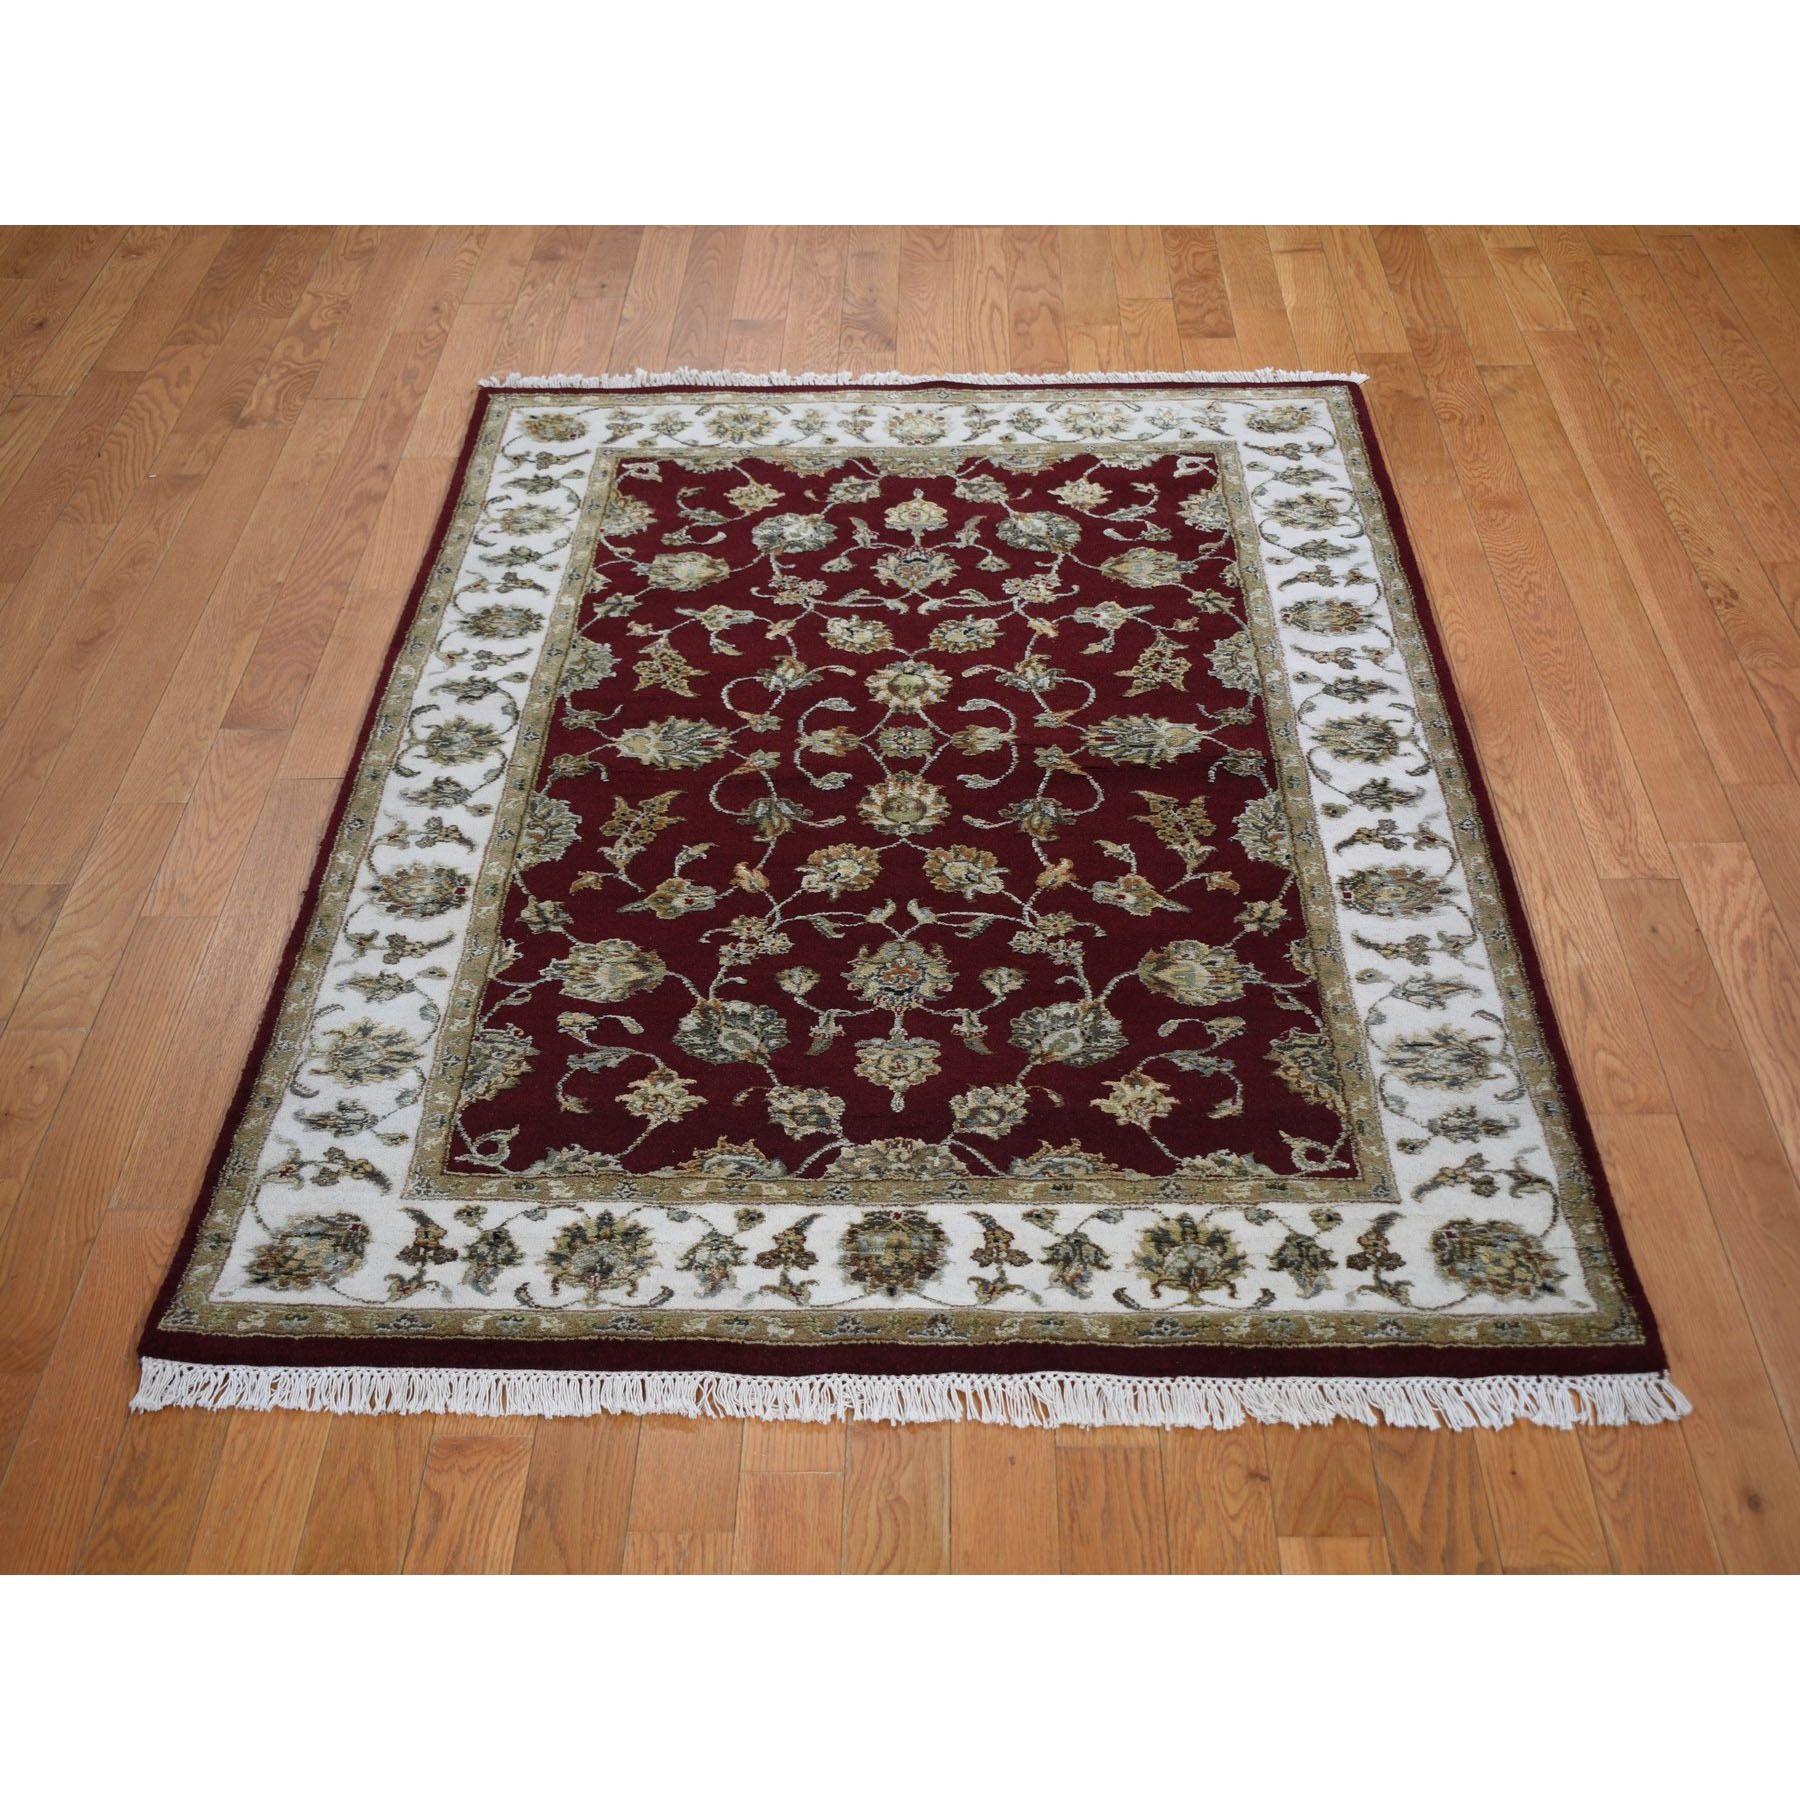 4-1 x6-3  Burgundy Half Wool And Half Silk Rajasthan Thick And Plush Oriental Rug